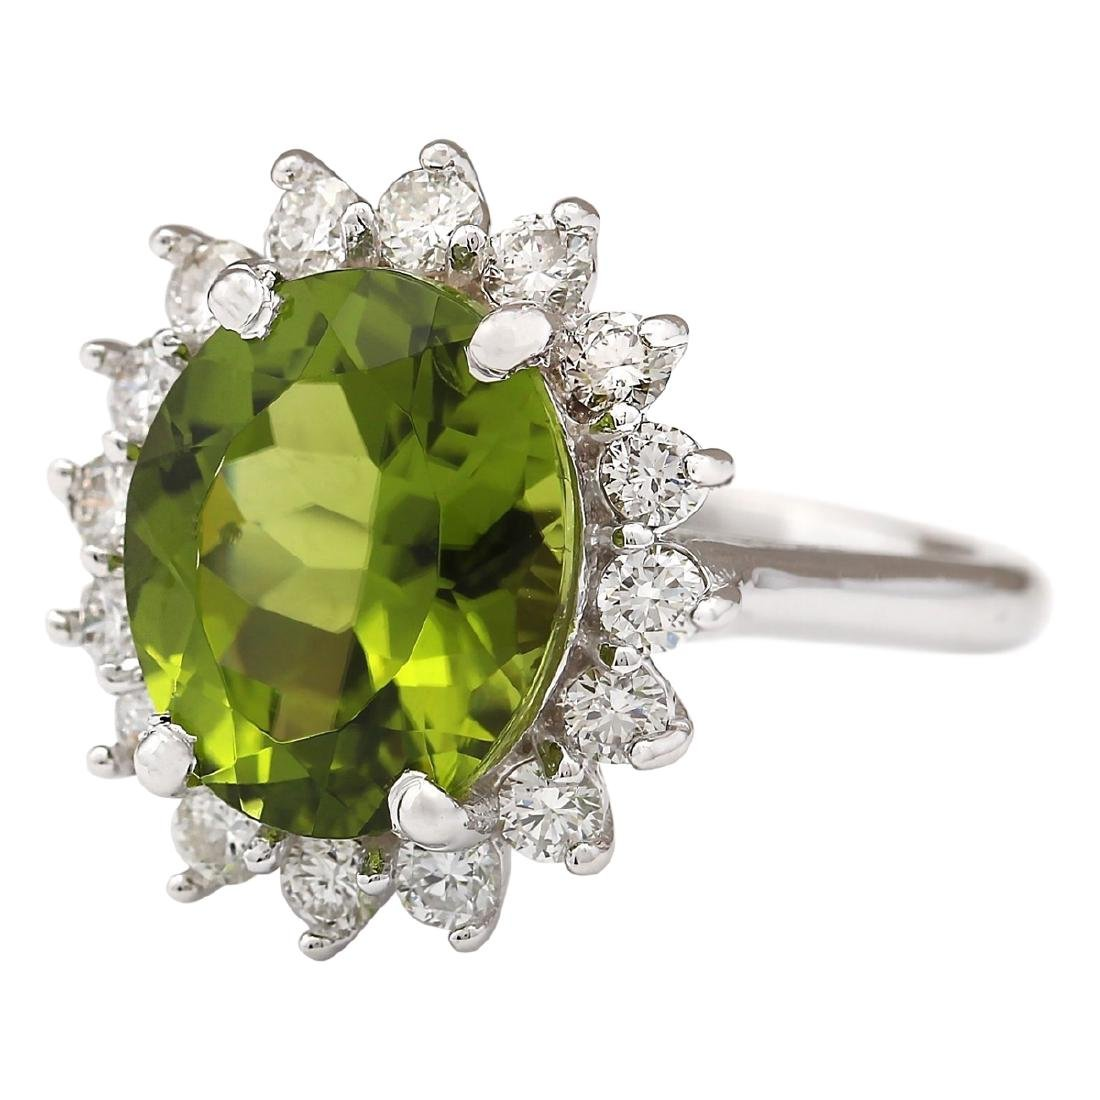 7.60 CTW Natural Peridot And Diamond Ring In 18K White - 2